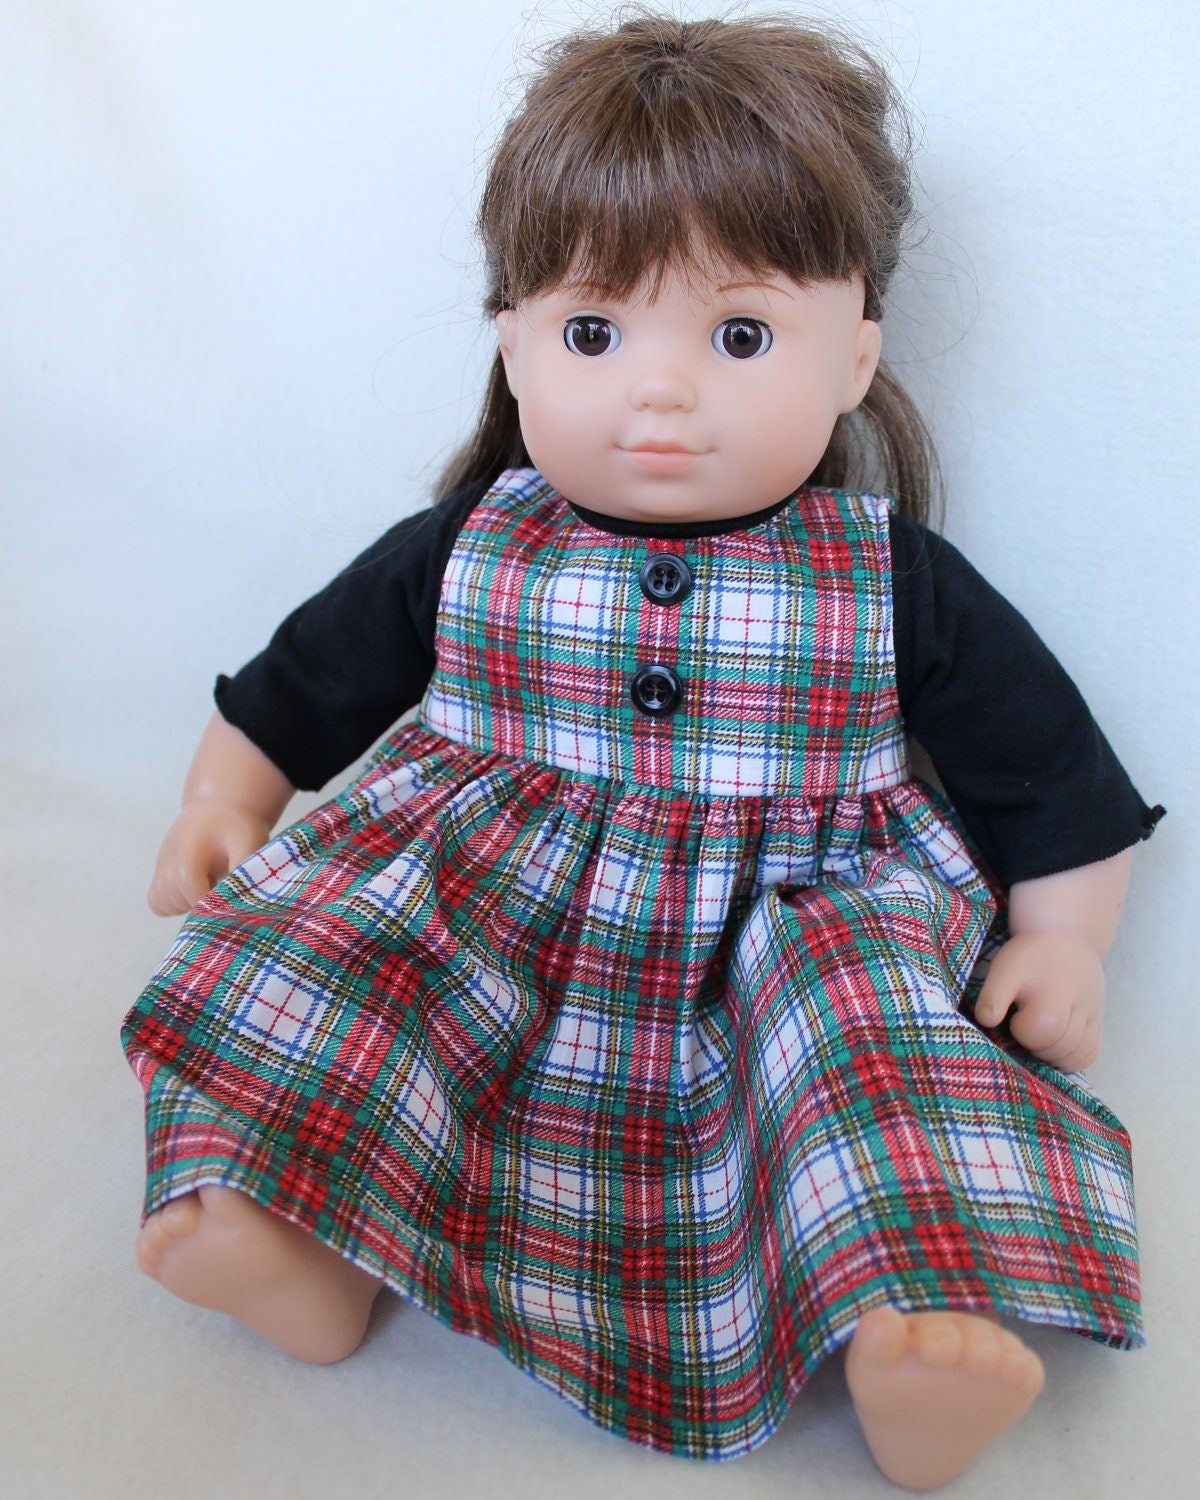 Black Knit Top with Christmas Jumper Doll Outfit Plaid Green Blue Red Black White Yellow Bitty Twin